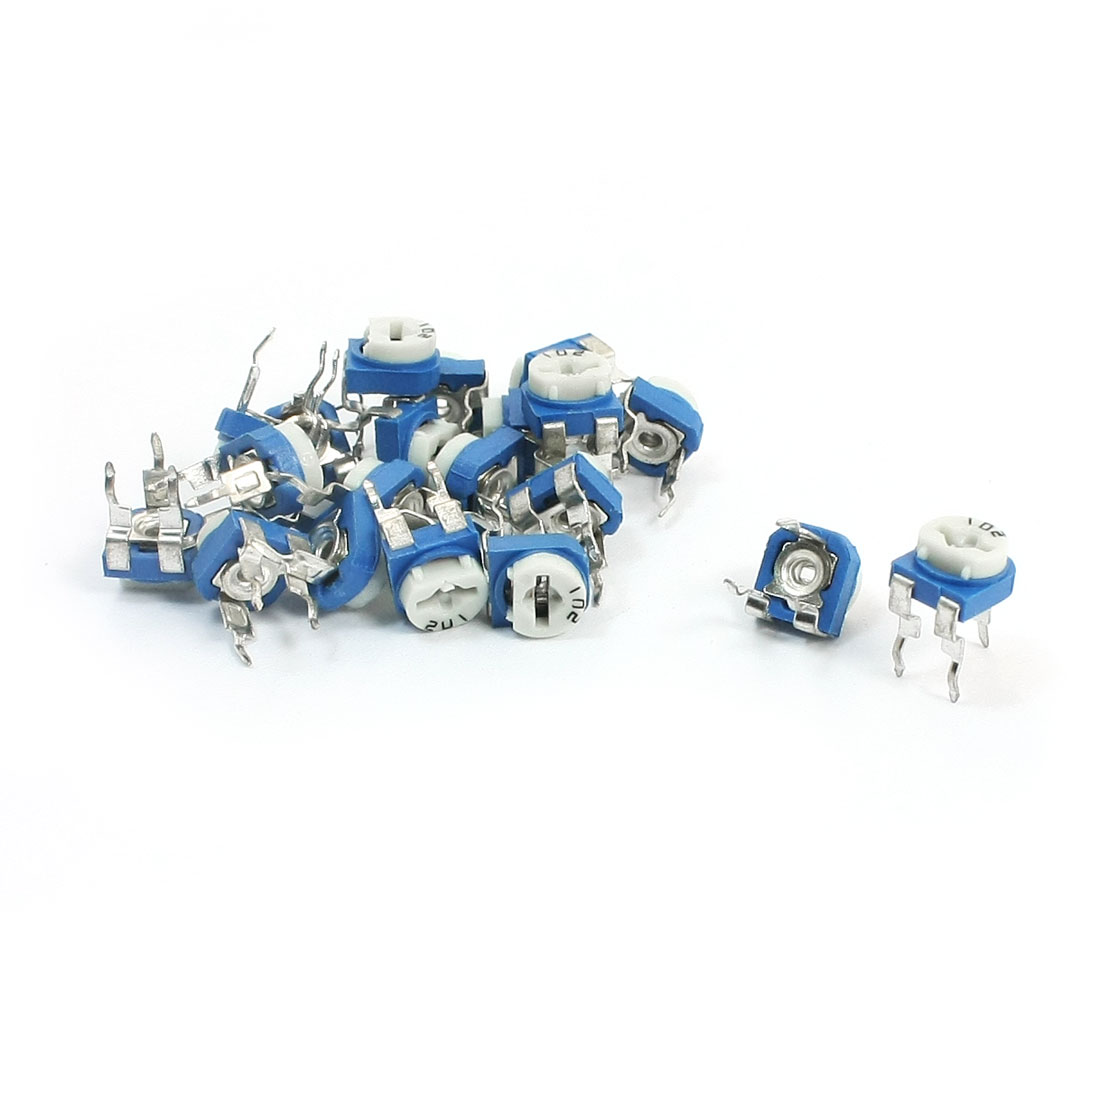 20Pcs Trim Pot Variable Resistor Horizontal Trimmer Potentiometer 1K Ohm